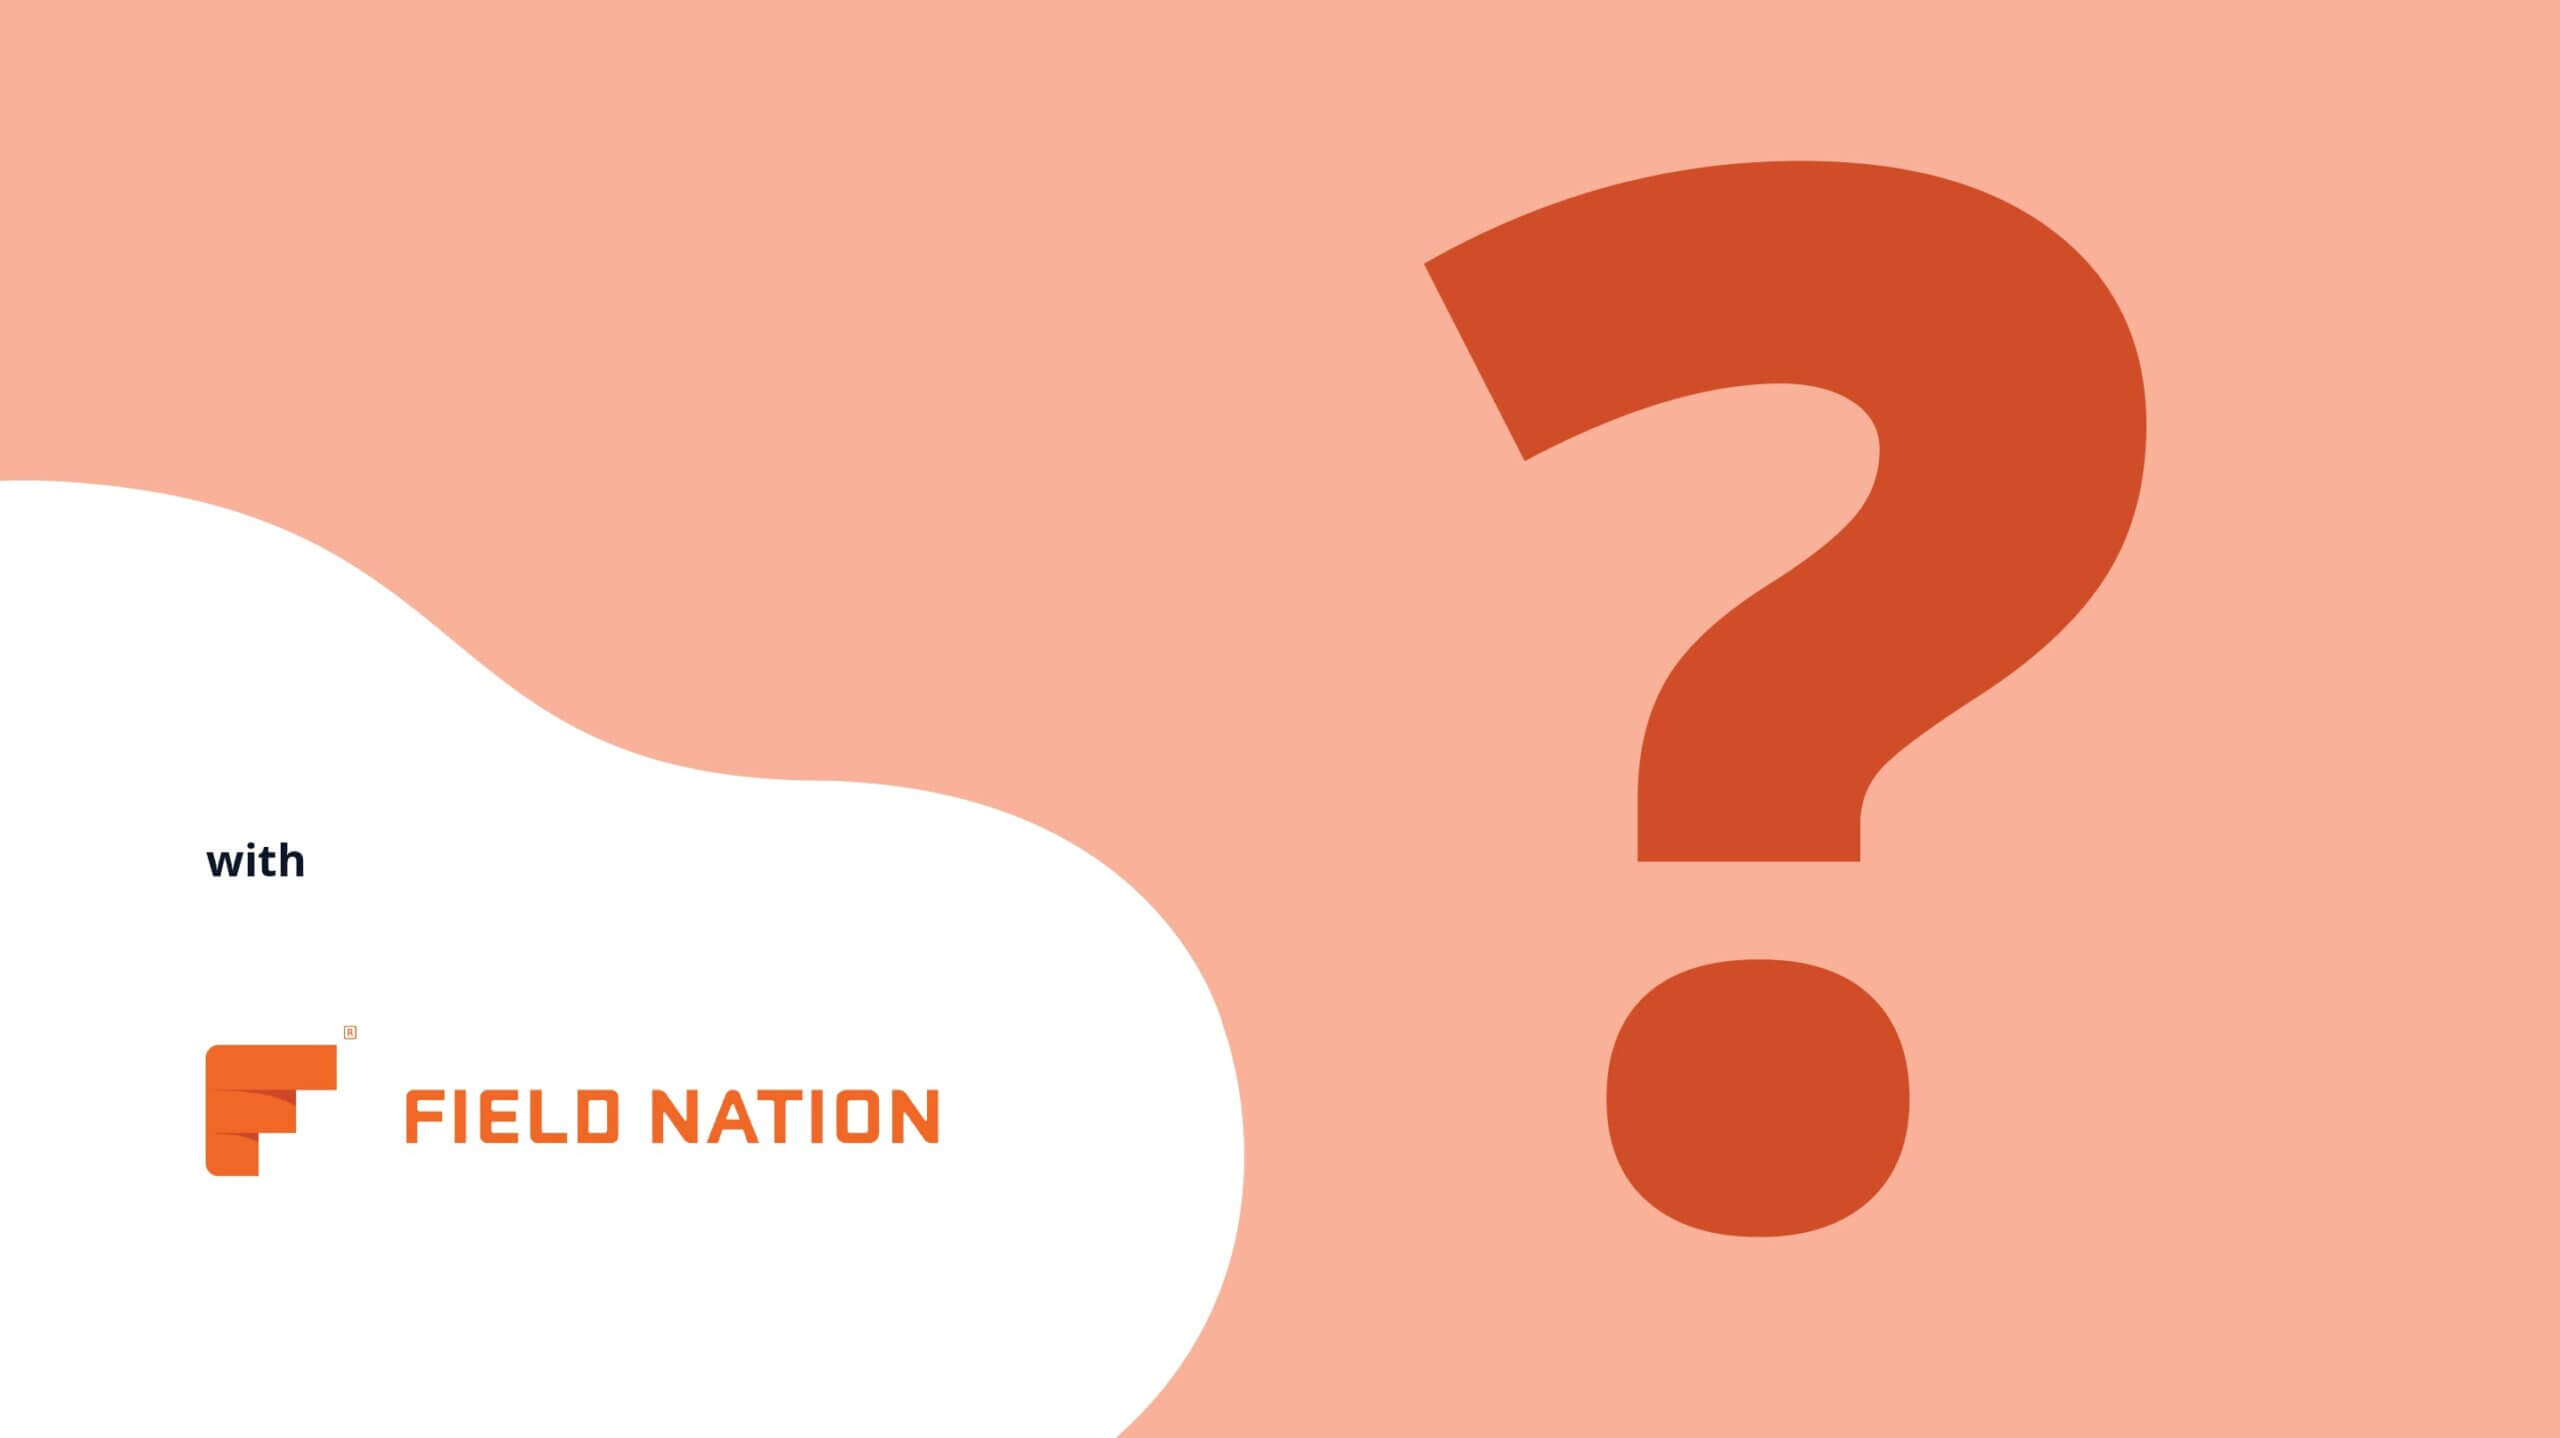 5 Questions With Field Nation